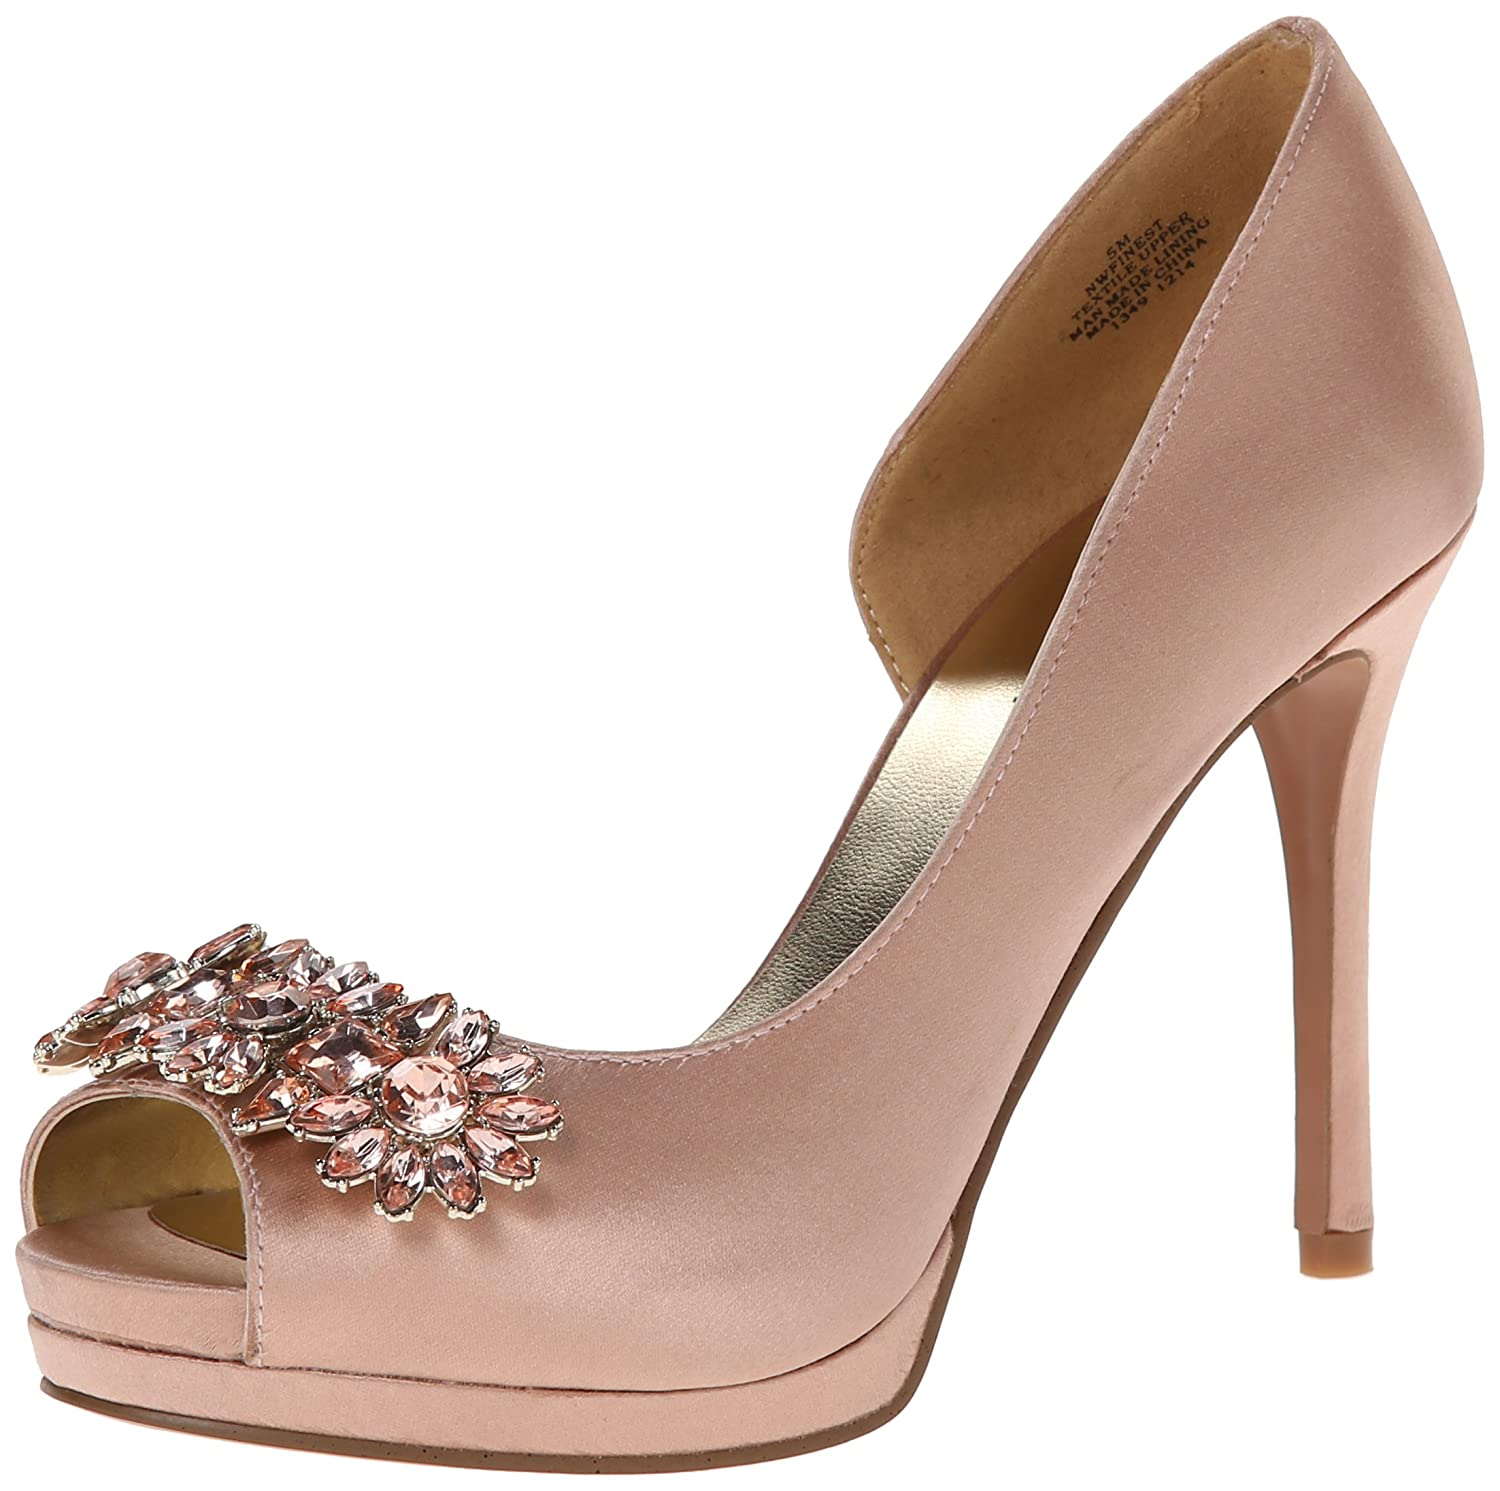 0e3d112e6e Amazon.com | Nine West Women's Finest Satin, Light Pink, 9.5 M US | Pumps